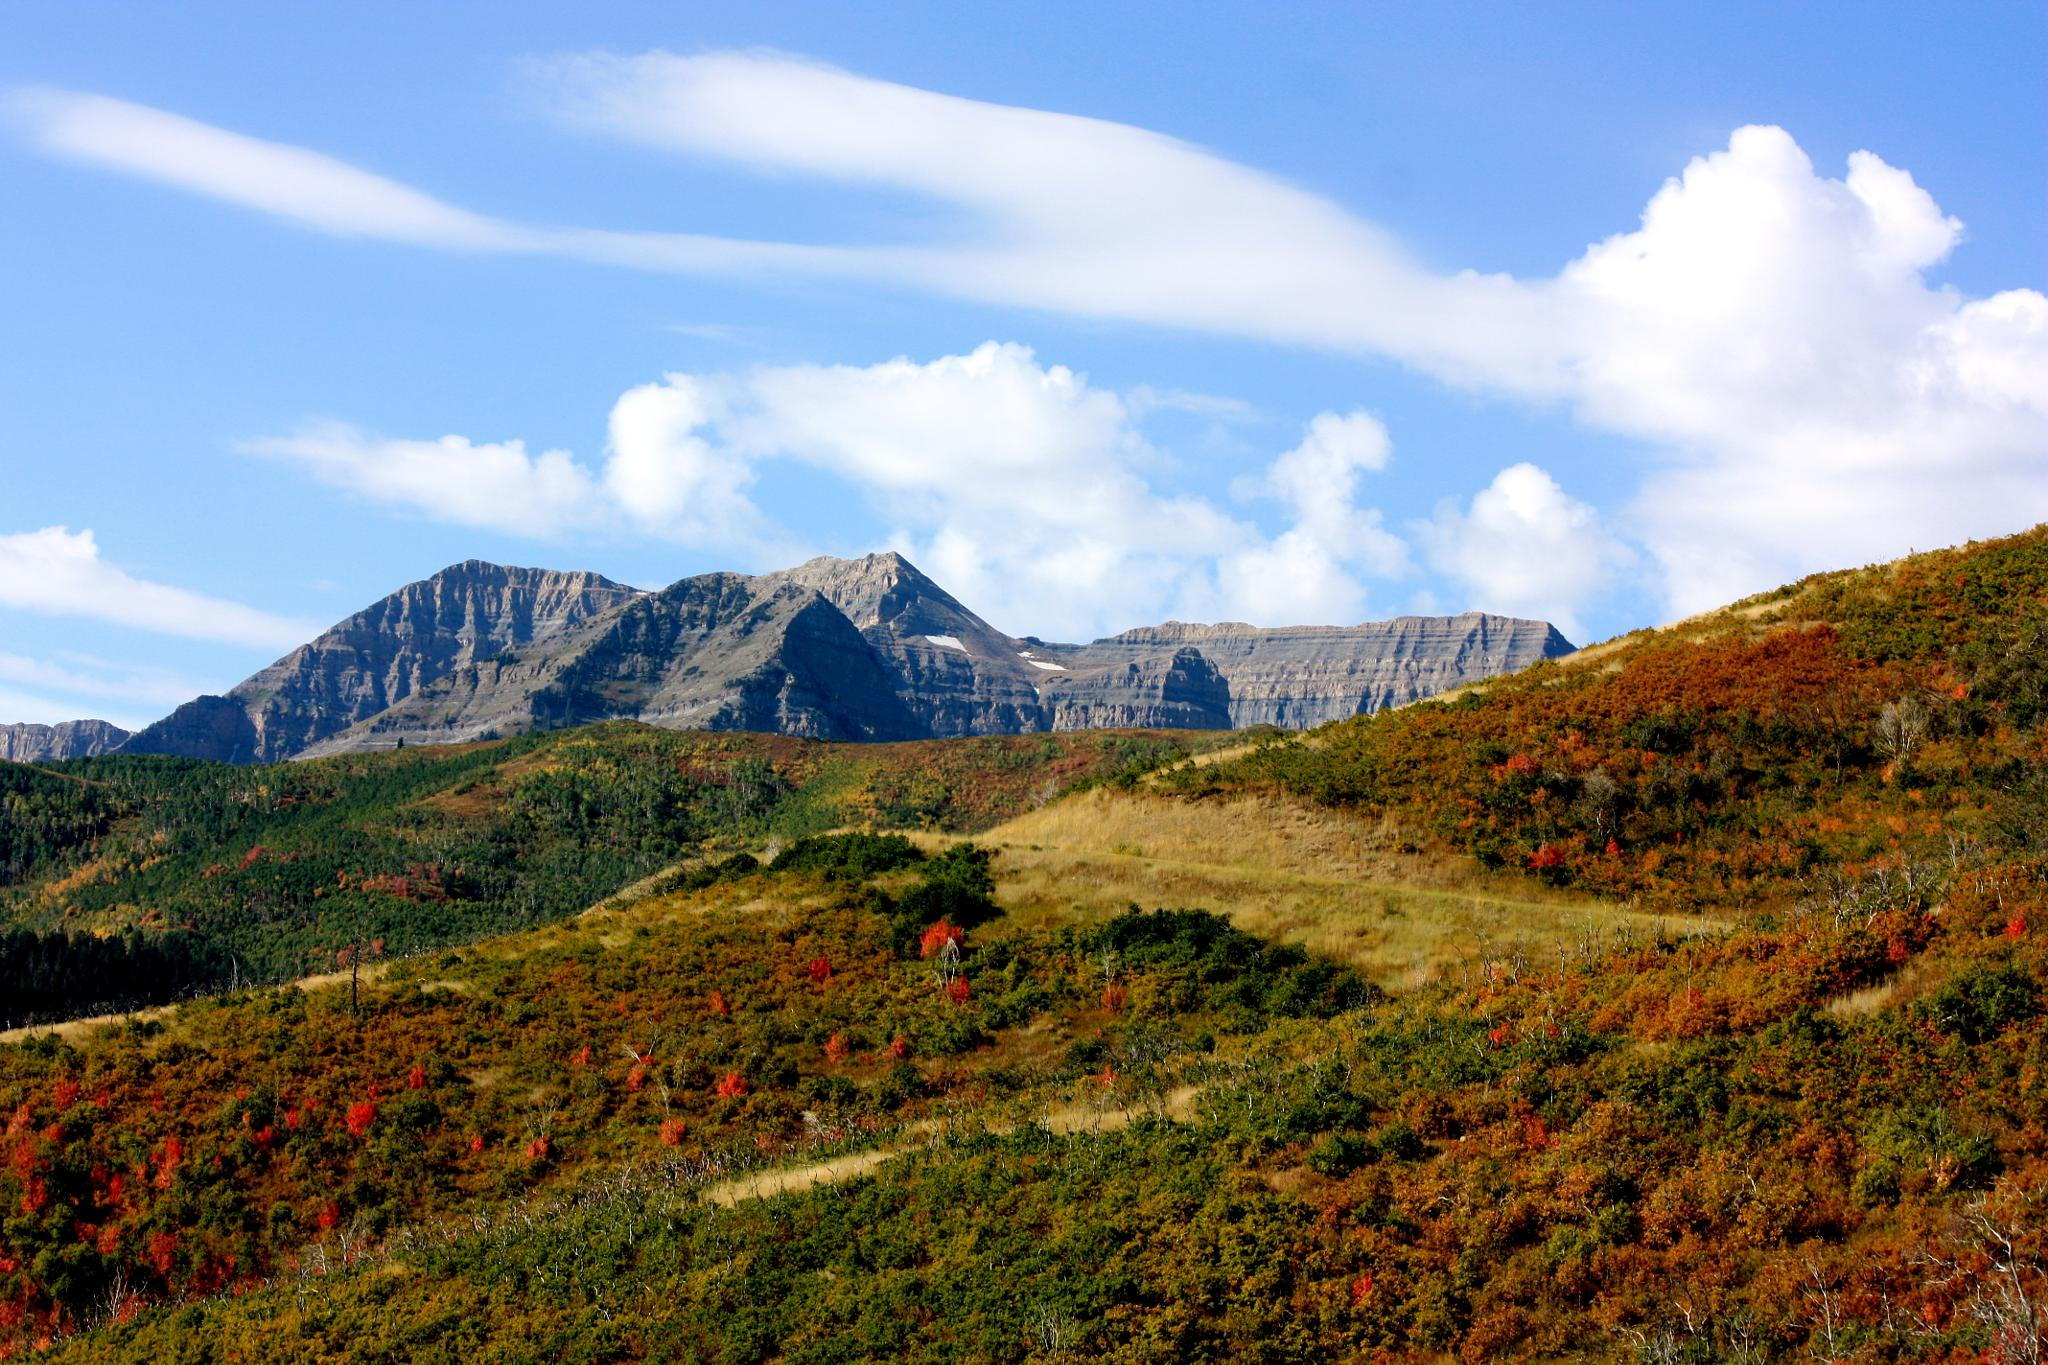 The many faces of Timp by Steven Thomas Densley